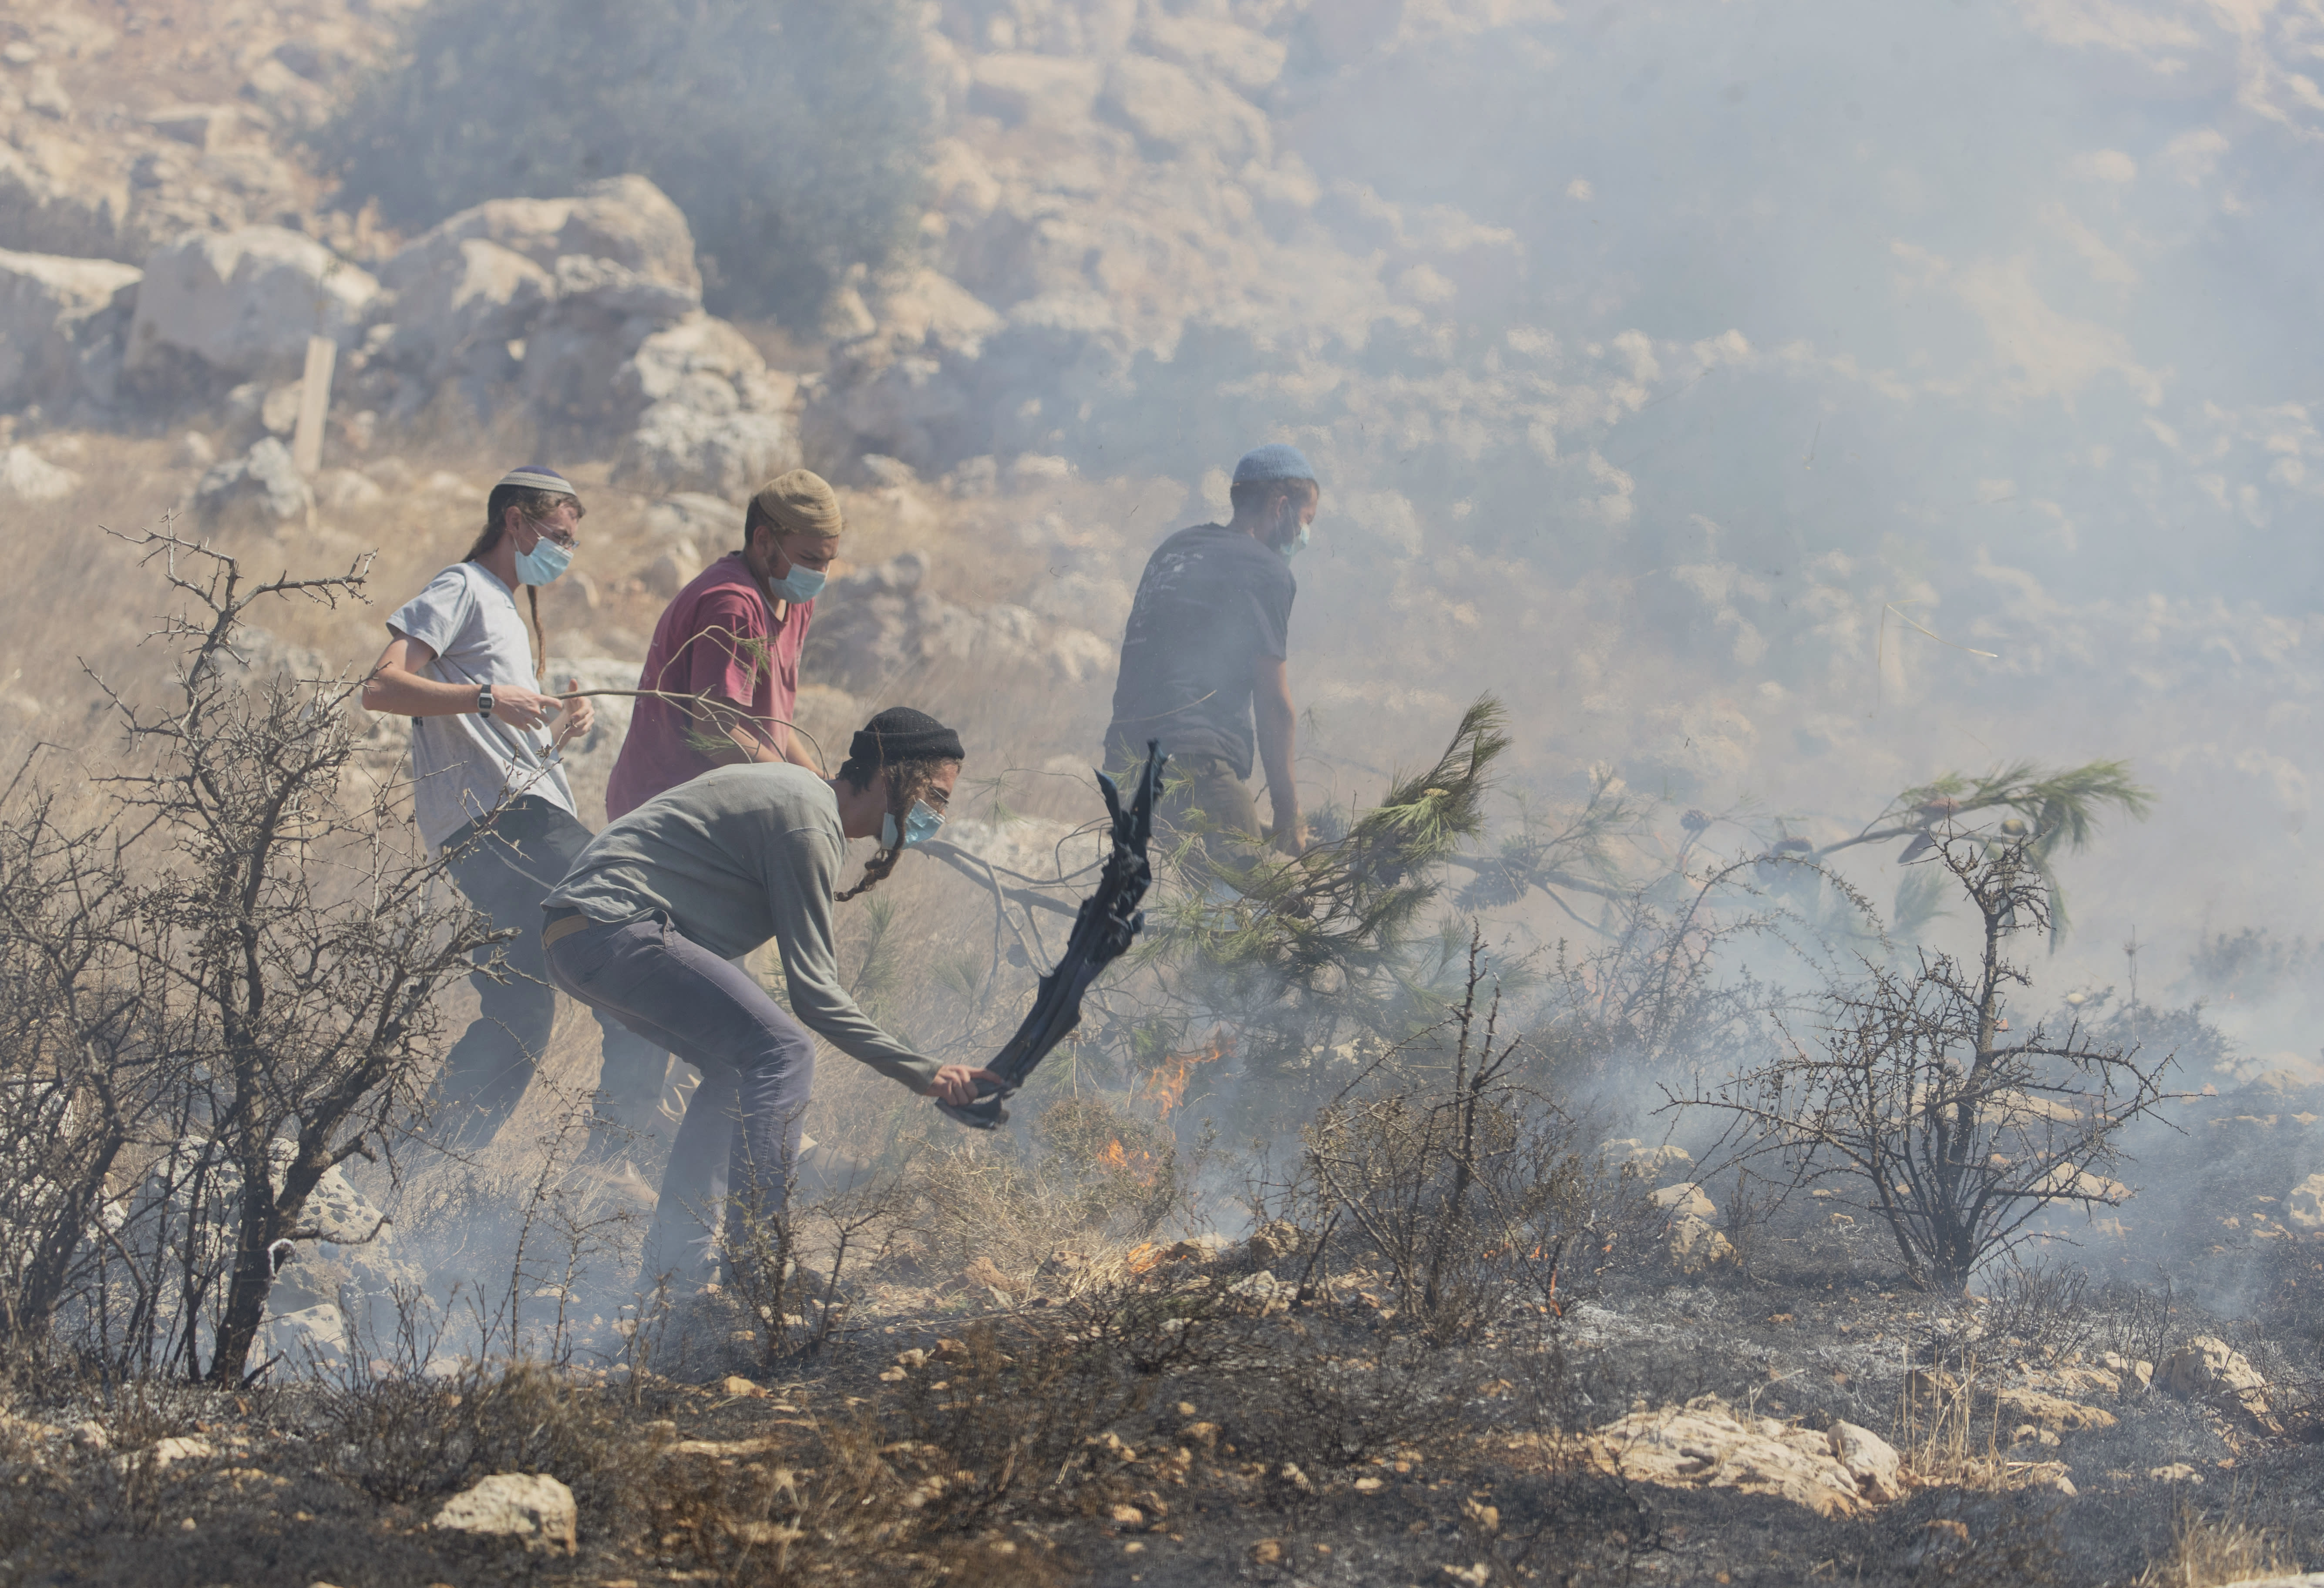 Jewish settlers fight fire in olive groves near their outpost that was caused by Israeli police's teargas canisters, used to disperse Palestinian farmers going to their groves, in the West Bank village of Burqa, East of Ramallah, Friday, Oct. 16, 2020. Palestinians clashed with Israeli border police in the West Bank on Friday during their attempt to reach and harvest their olive groves near a Jewish settlers outpost. (AP Photo/Nasser Nasser)